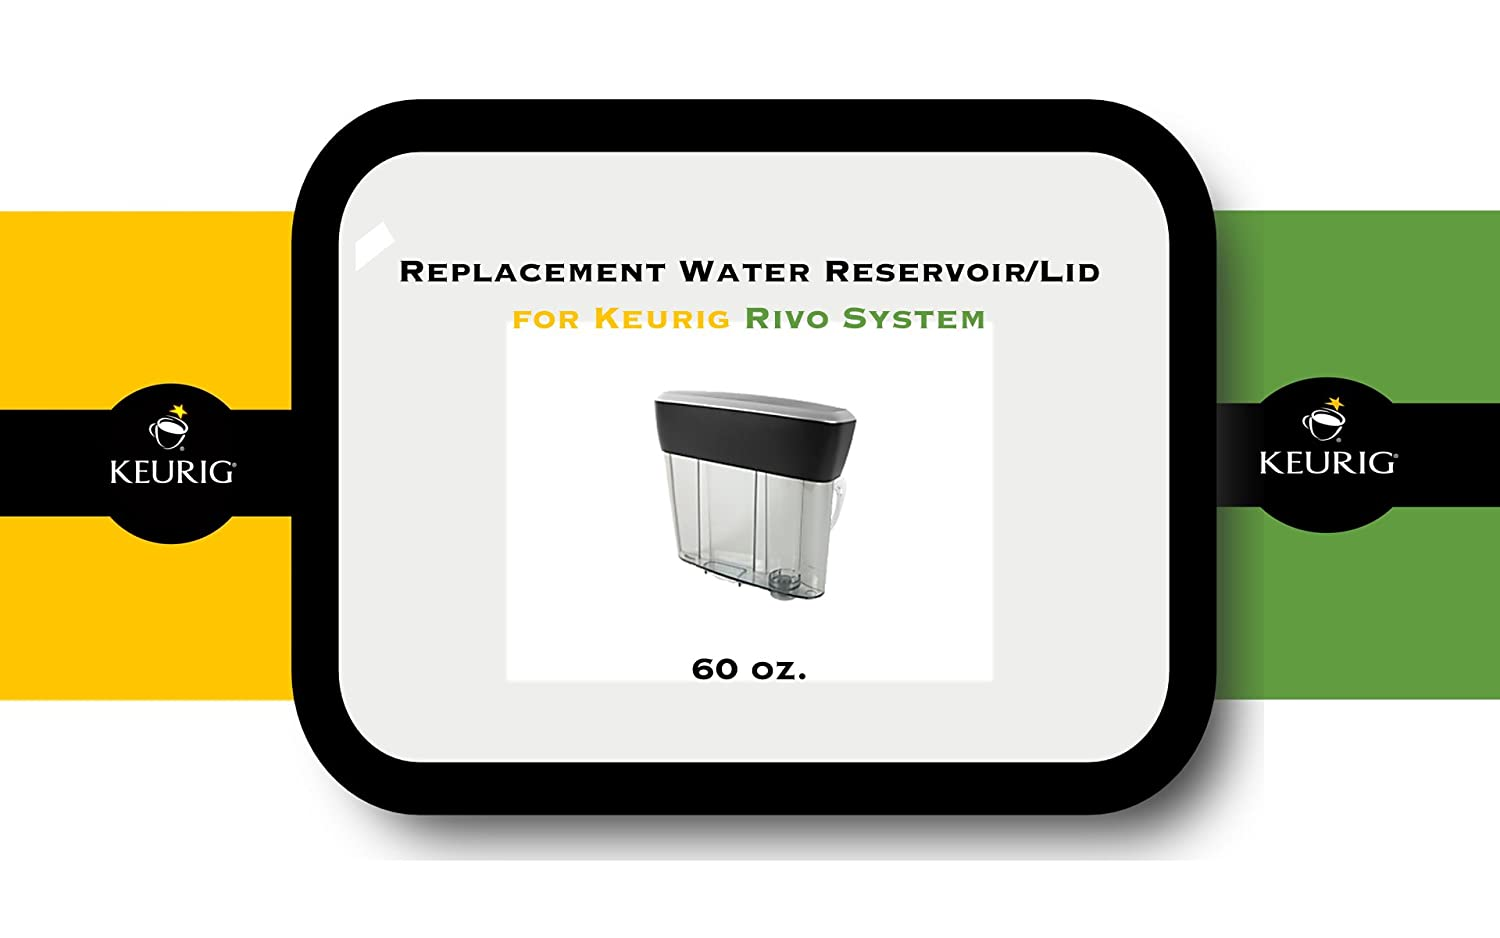 Replacement Water Reservoir for Keurig Rivo Brewing System - 60-oz.